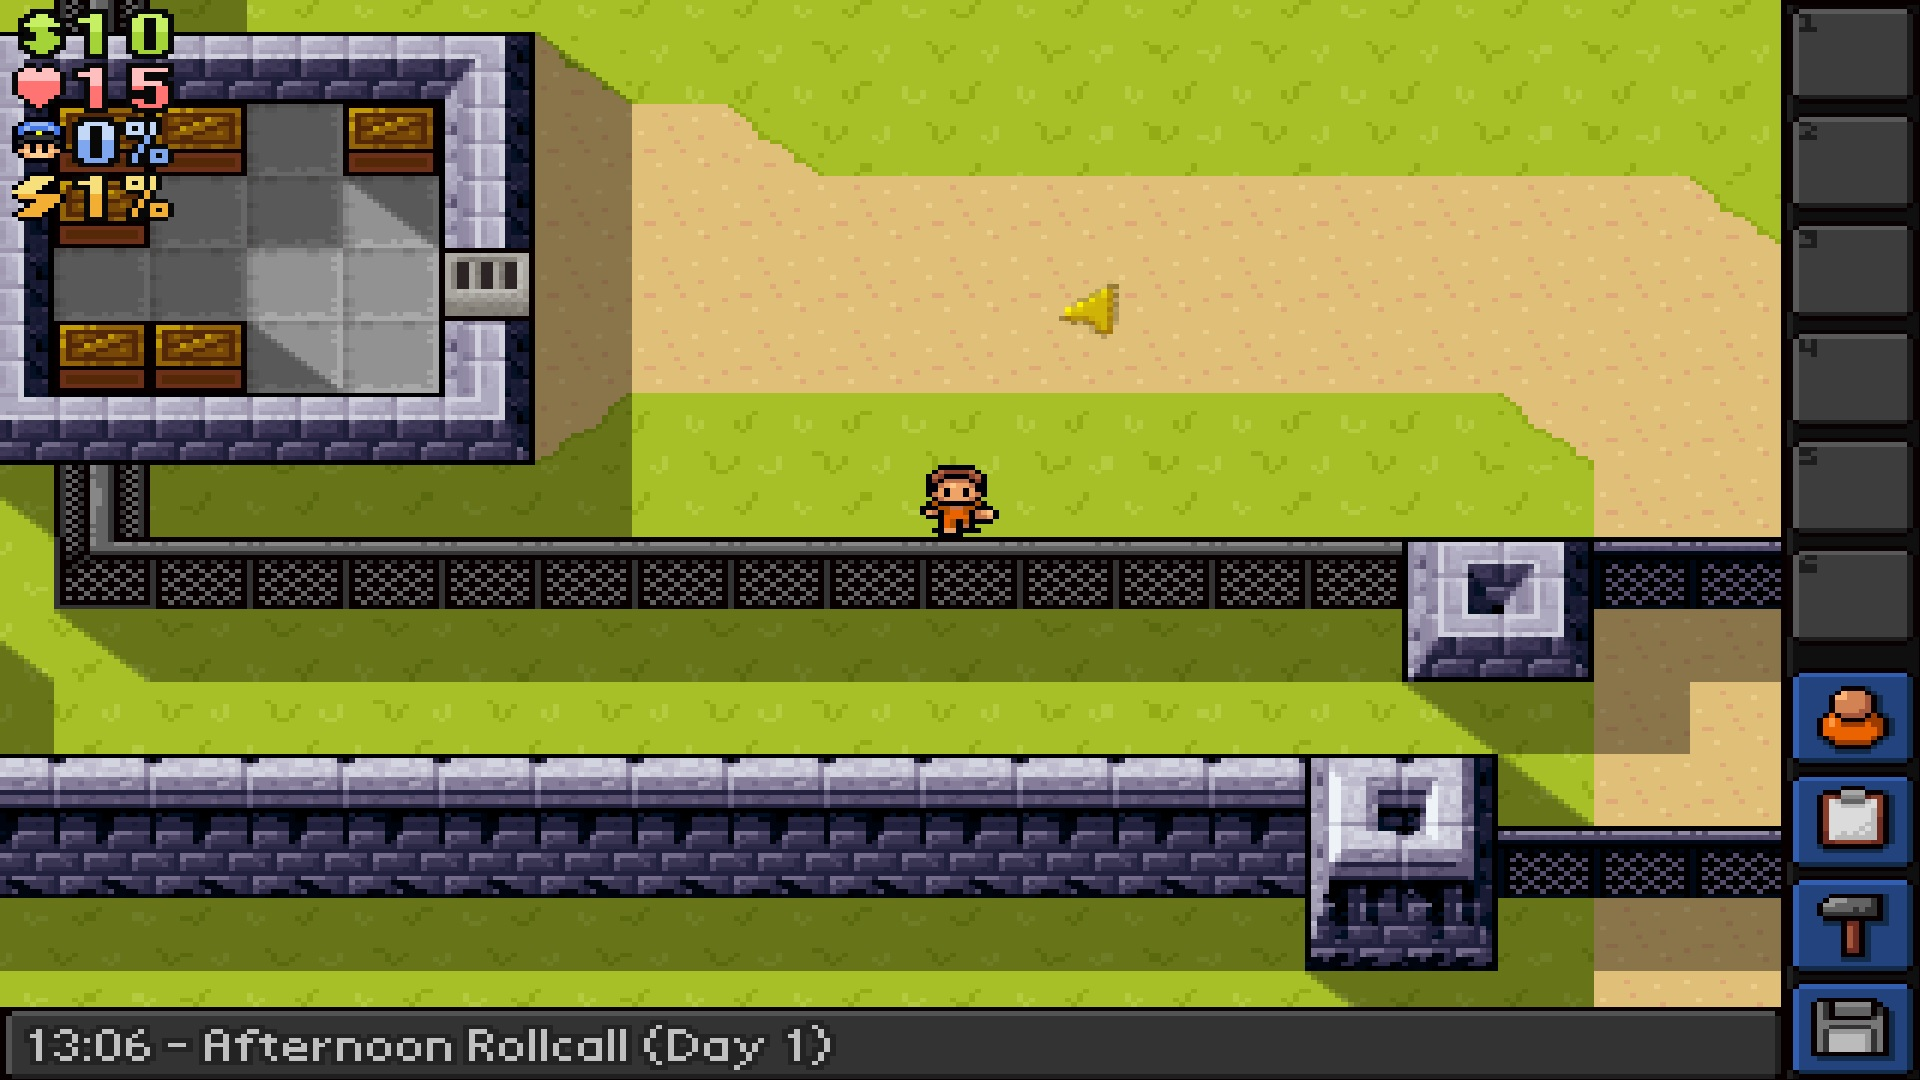 The Escapists - Fhurst Peak Correctional Facility [Online Game Code] by Team17 (Image #4)